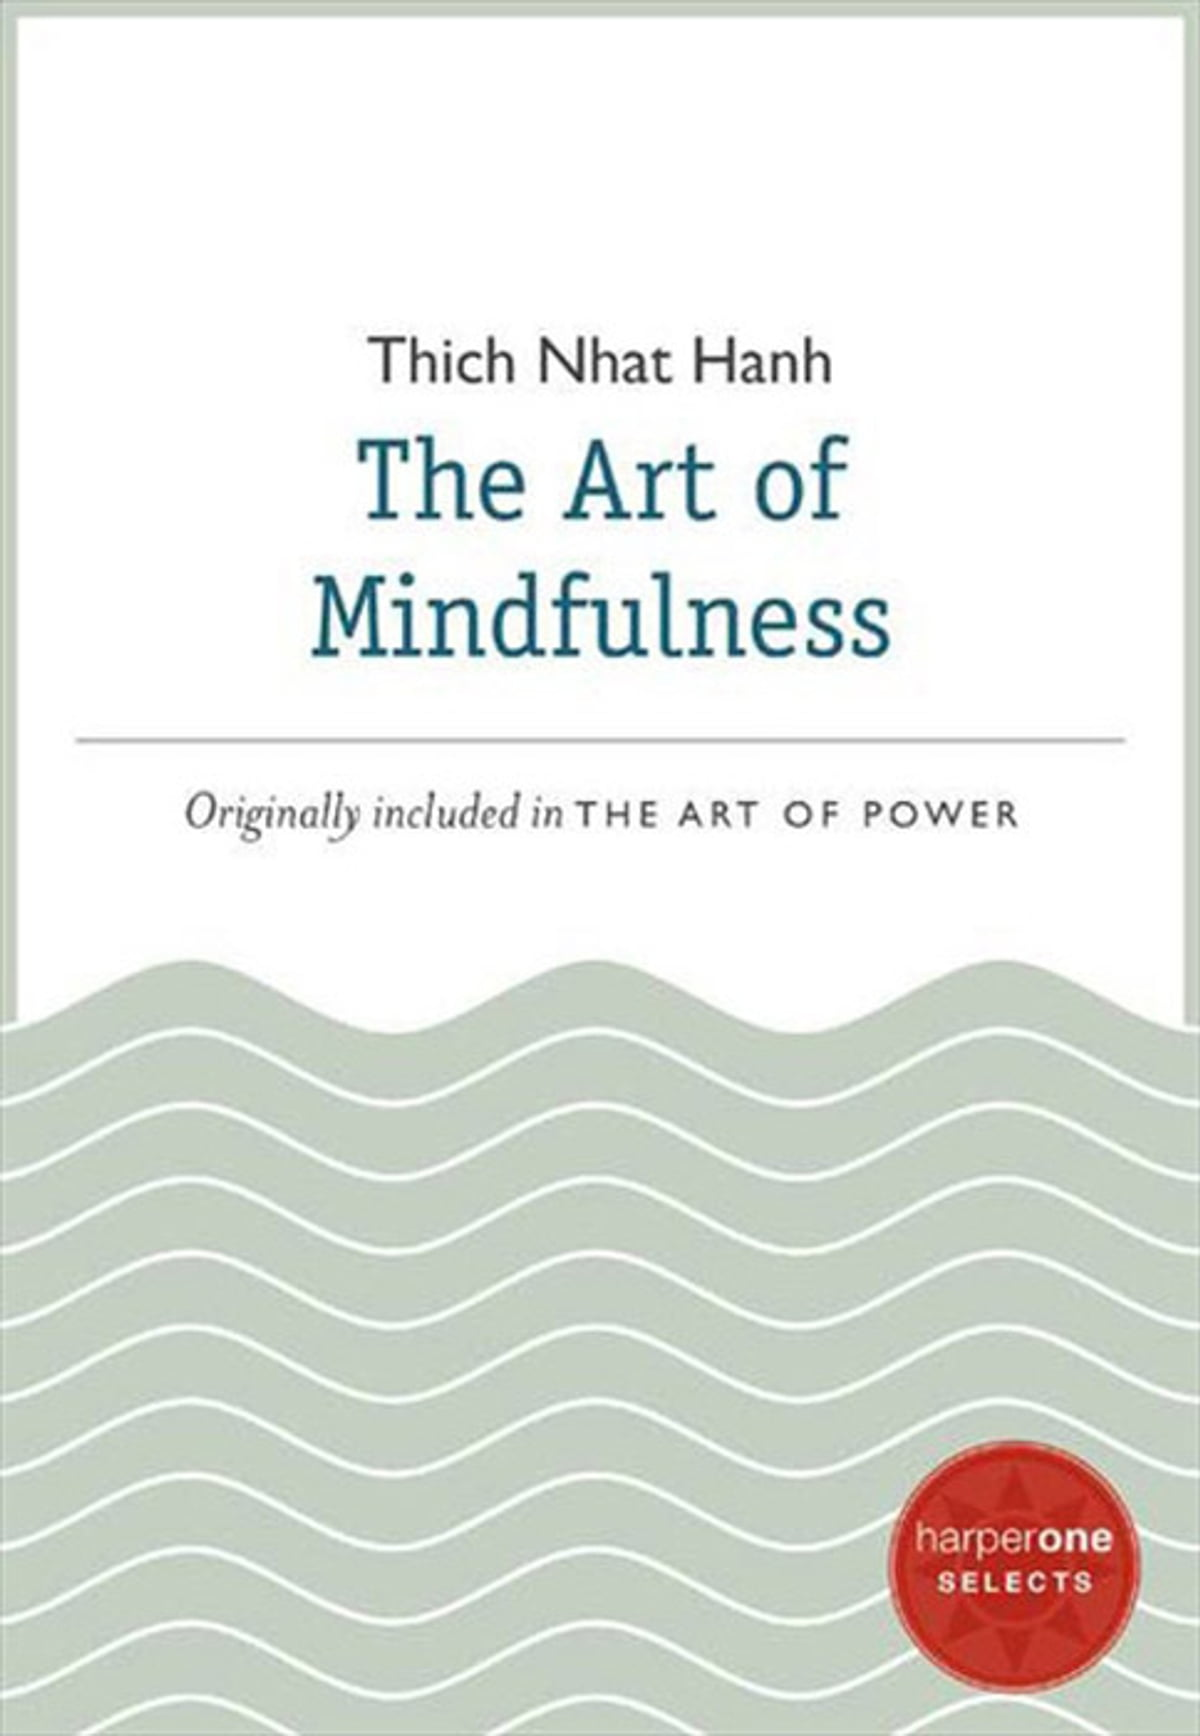 the art of mindfulness ebook by thich nhat hanh 9780062123626